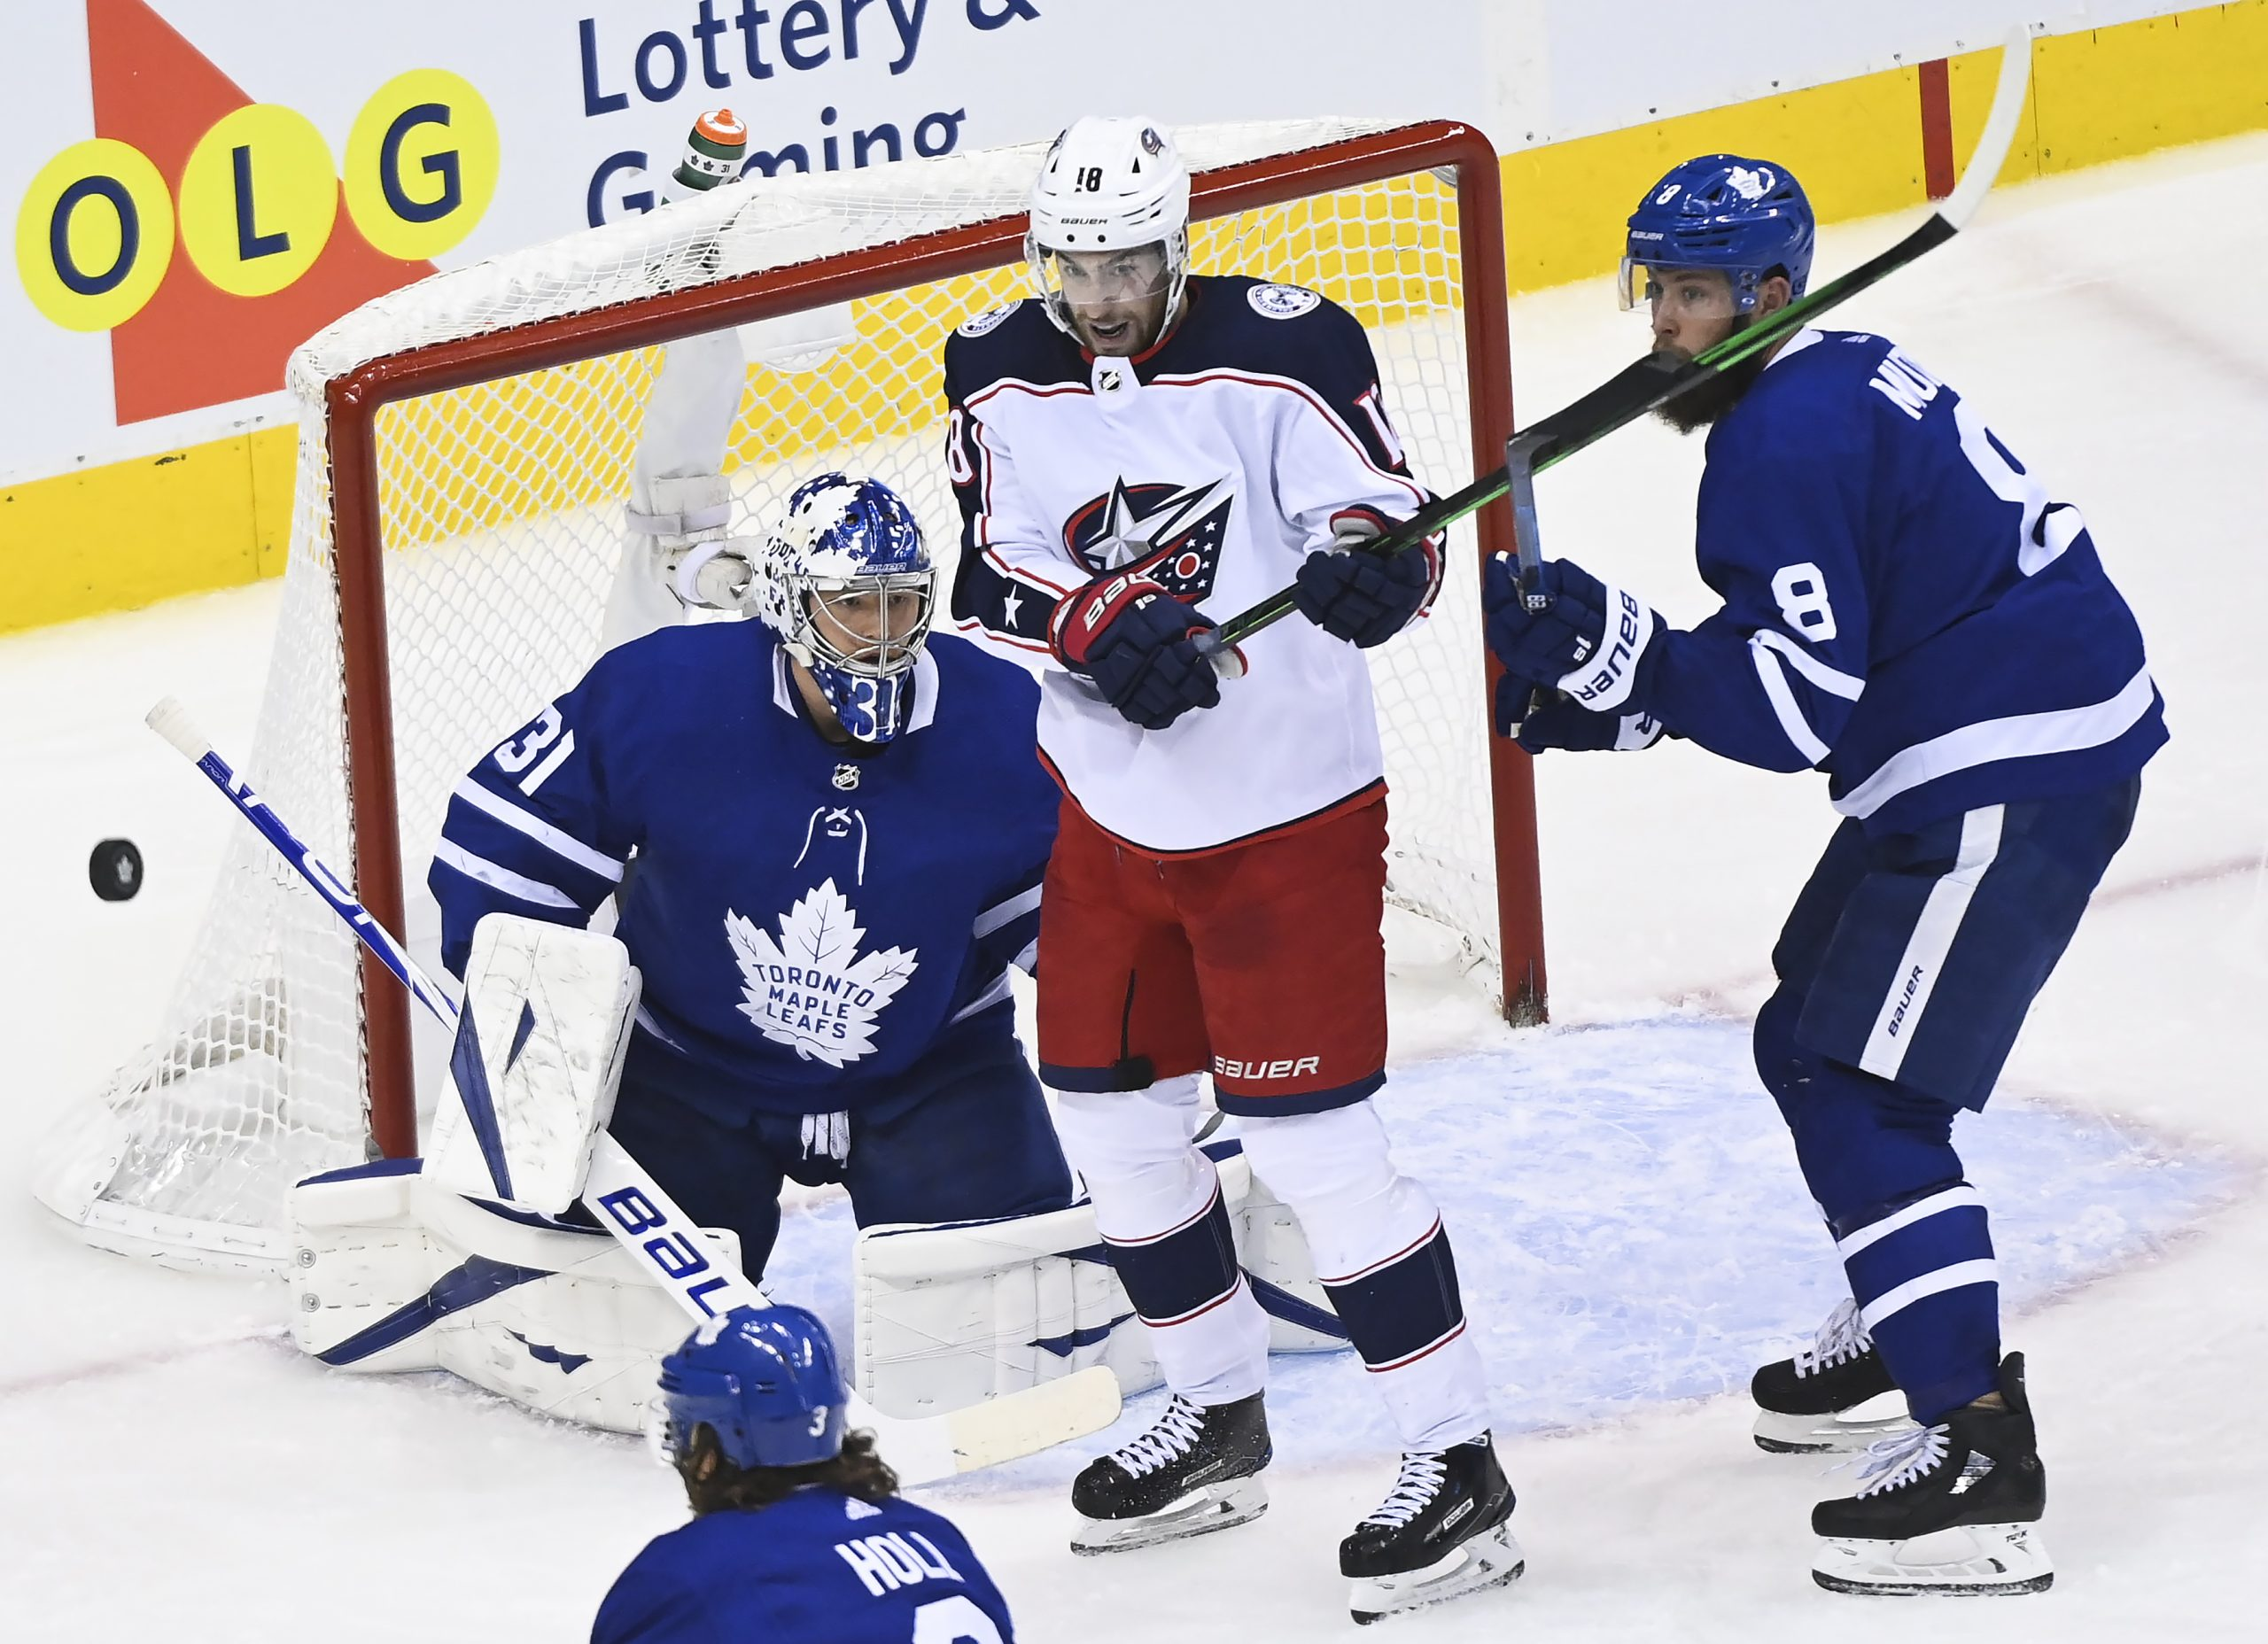 Leafs Blue Jackets Face Off In Game 3 Of Qualifying Series Citynews Toronto